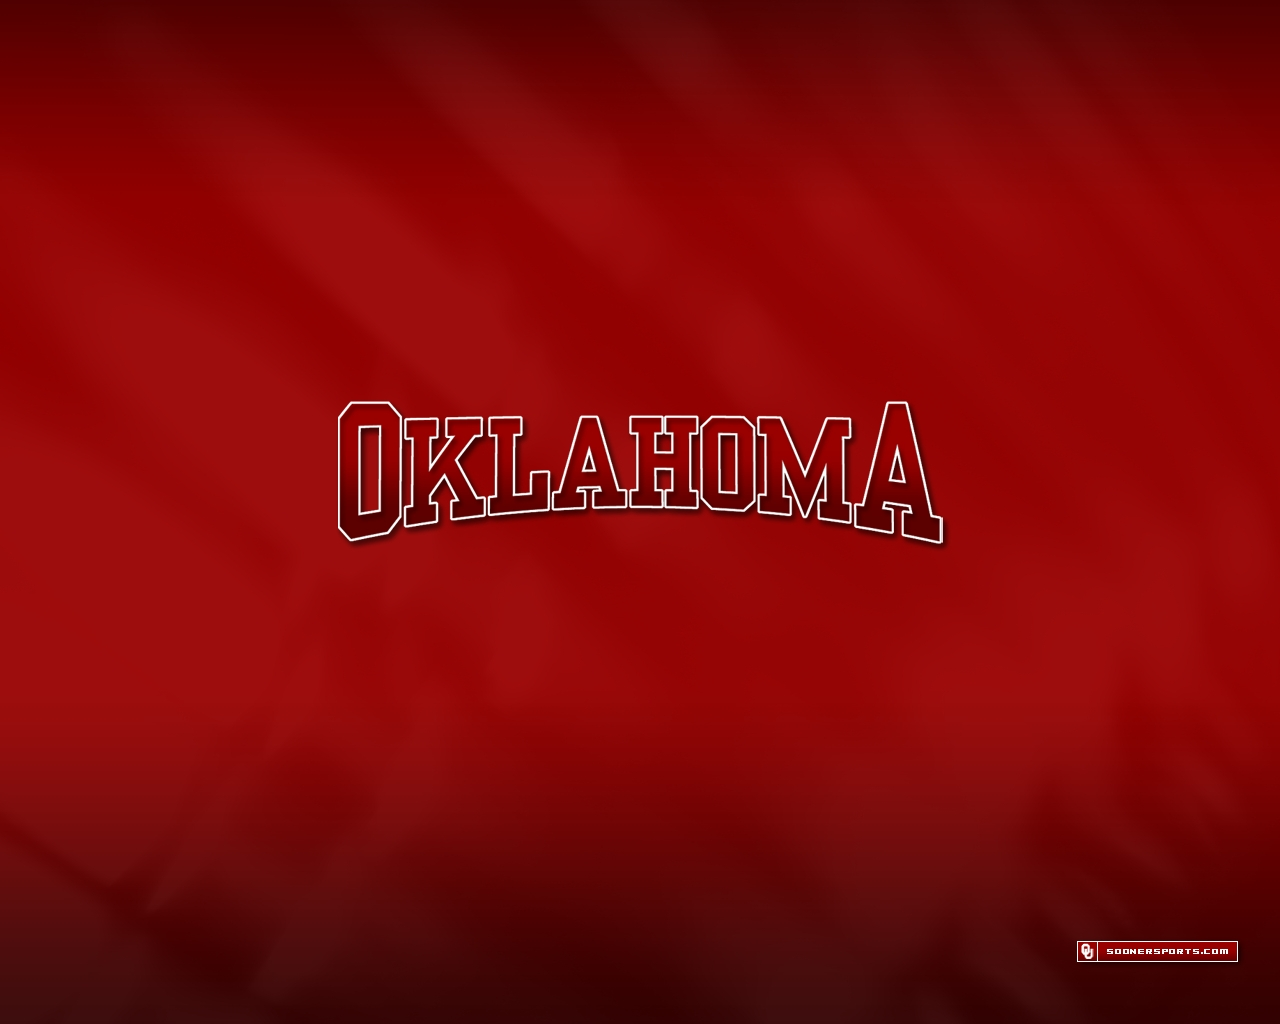 1280x1024 Oklahoma Sooners Wallpaper Download 1280x1024